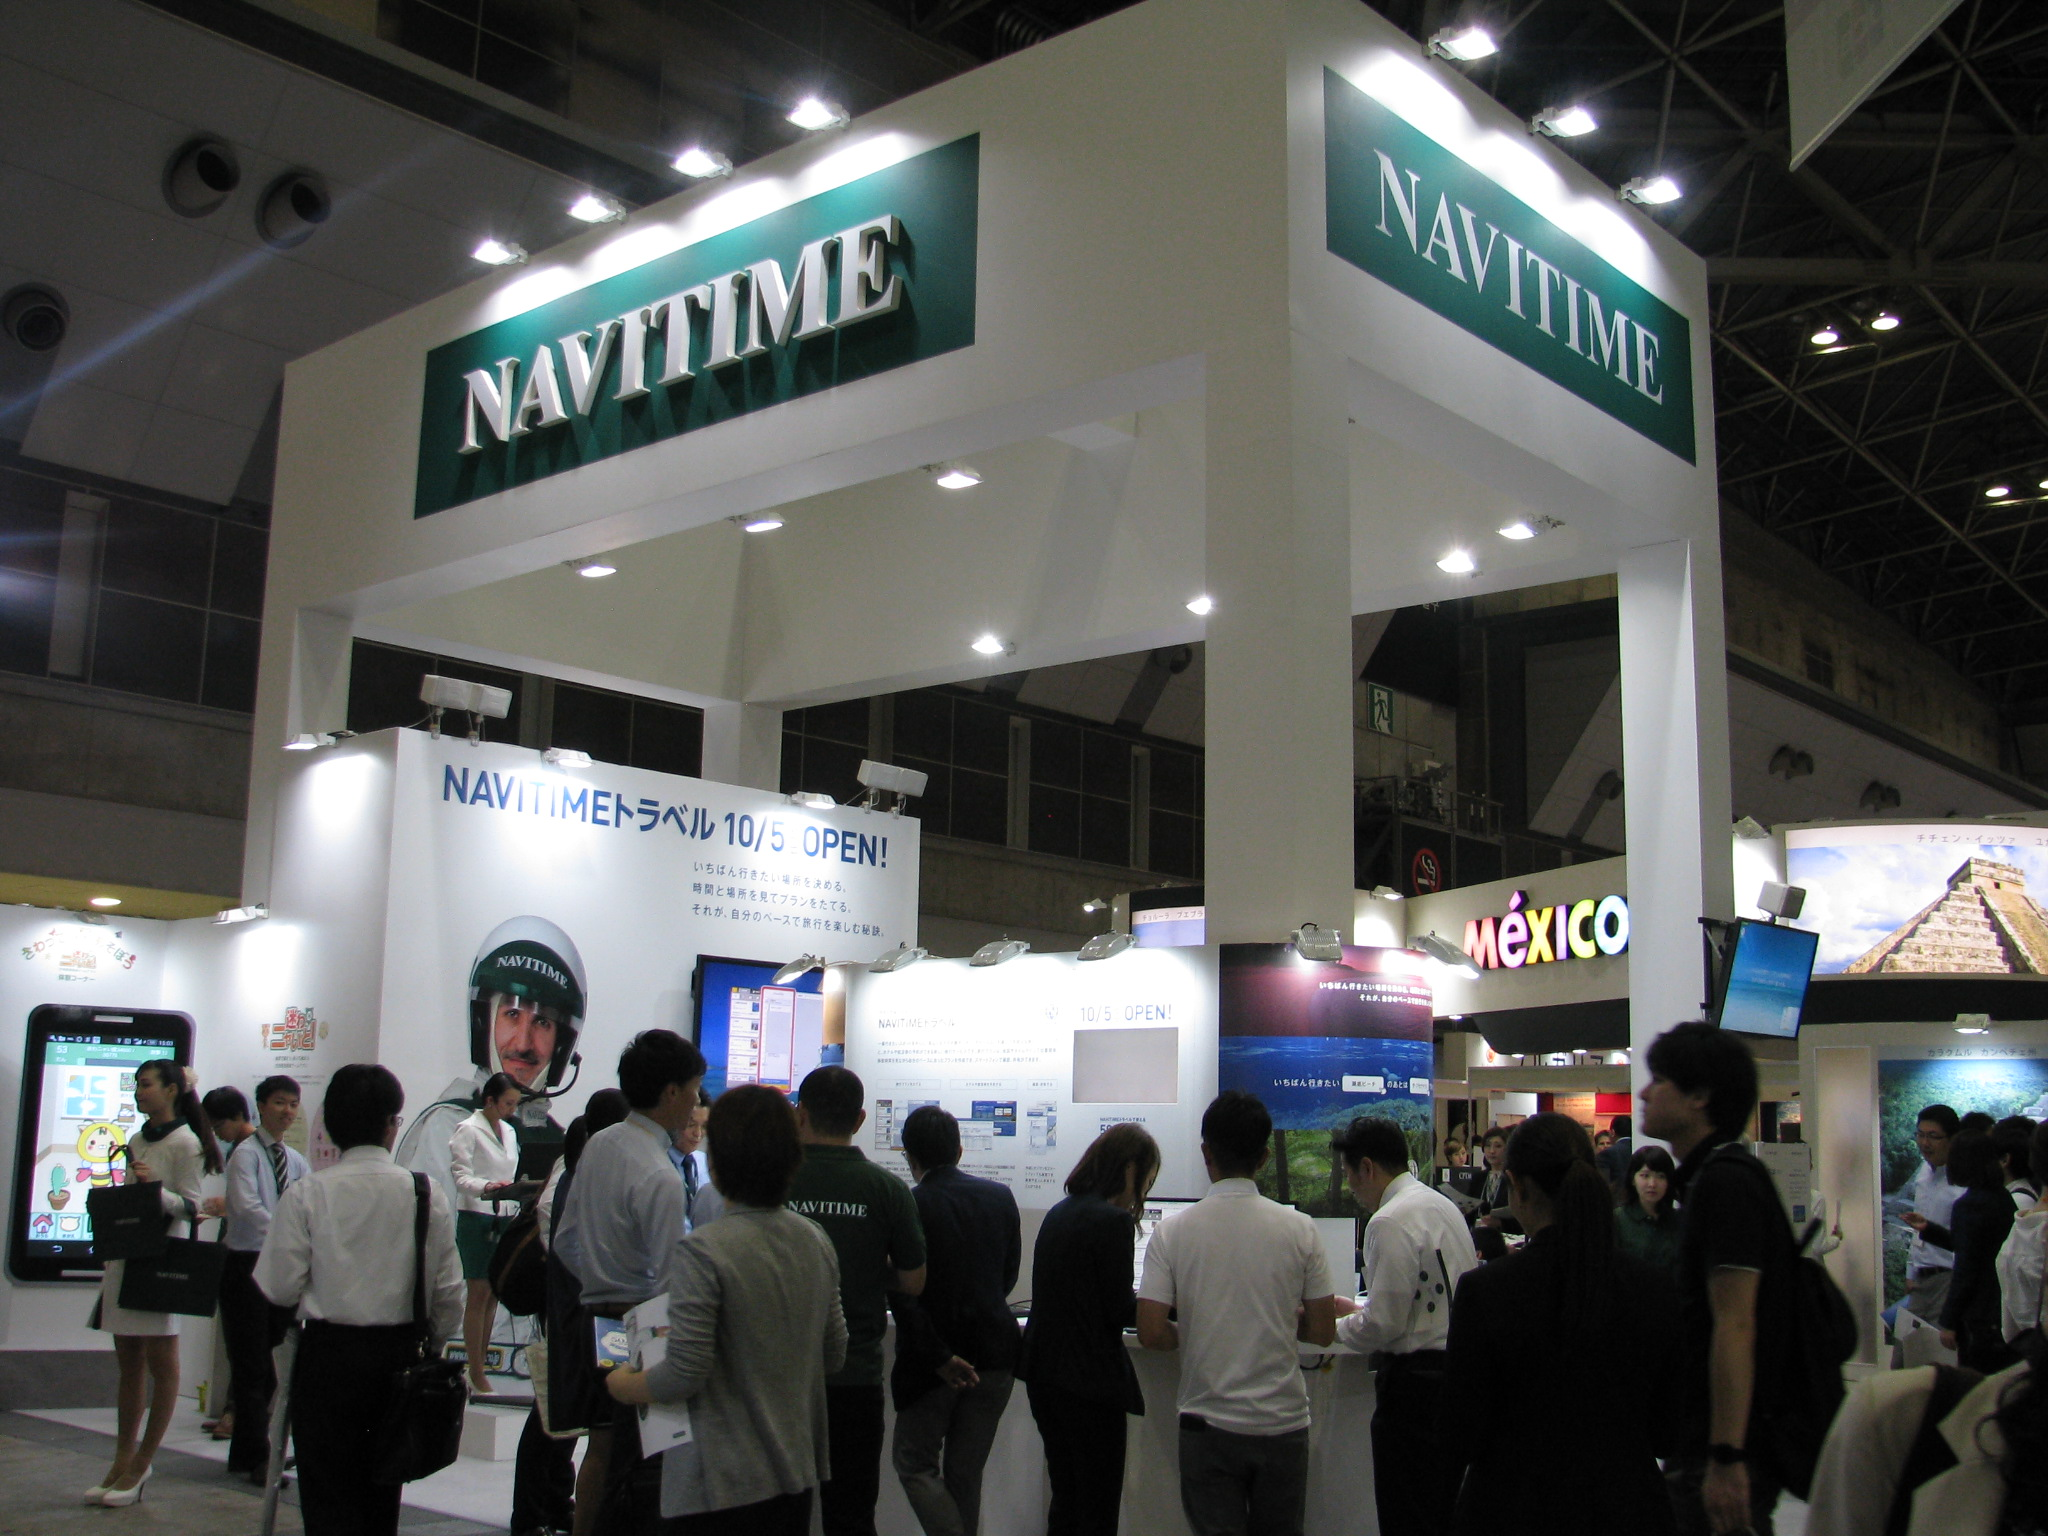 NAVITIME Japan launches an online travel booking business including sales of package tours